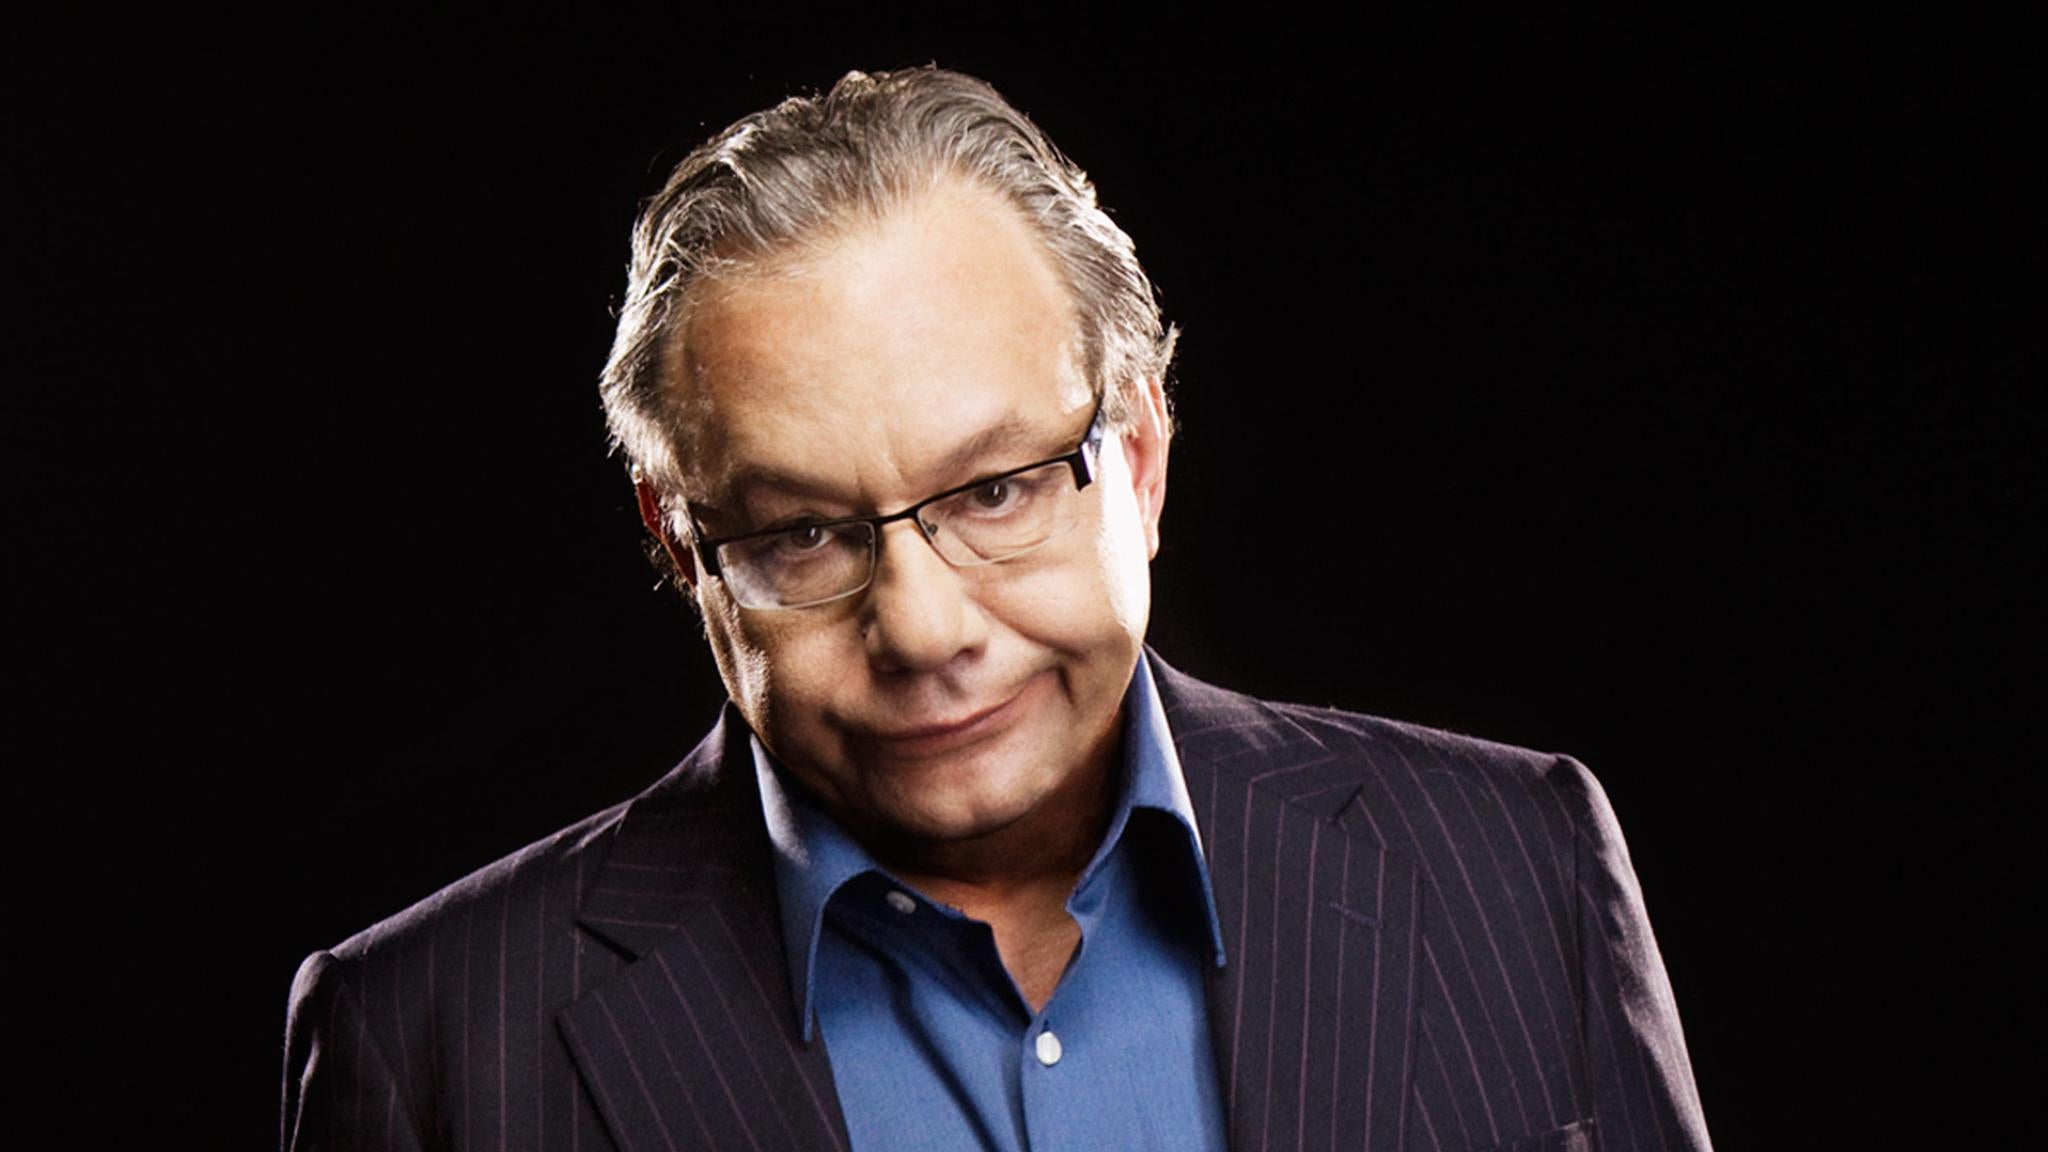 Lewis Black - The Rant, White & Blue Tour at Hershey Theatre